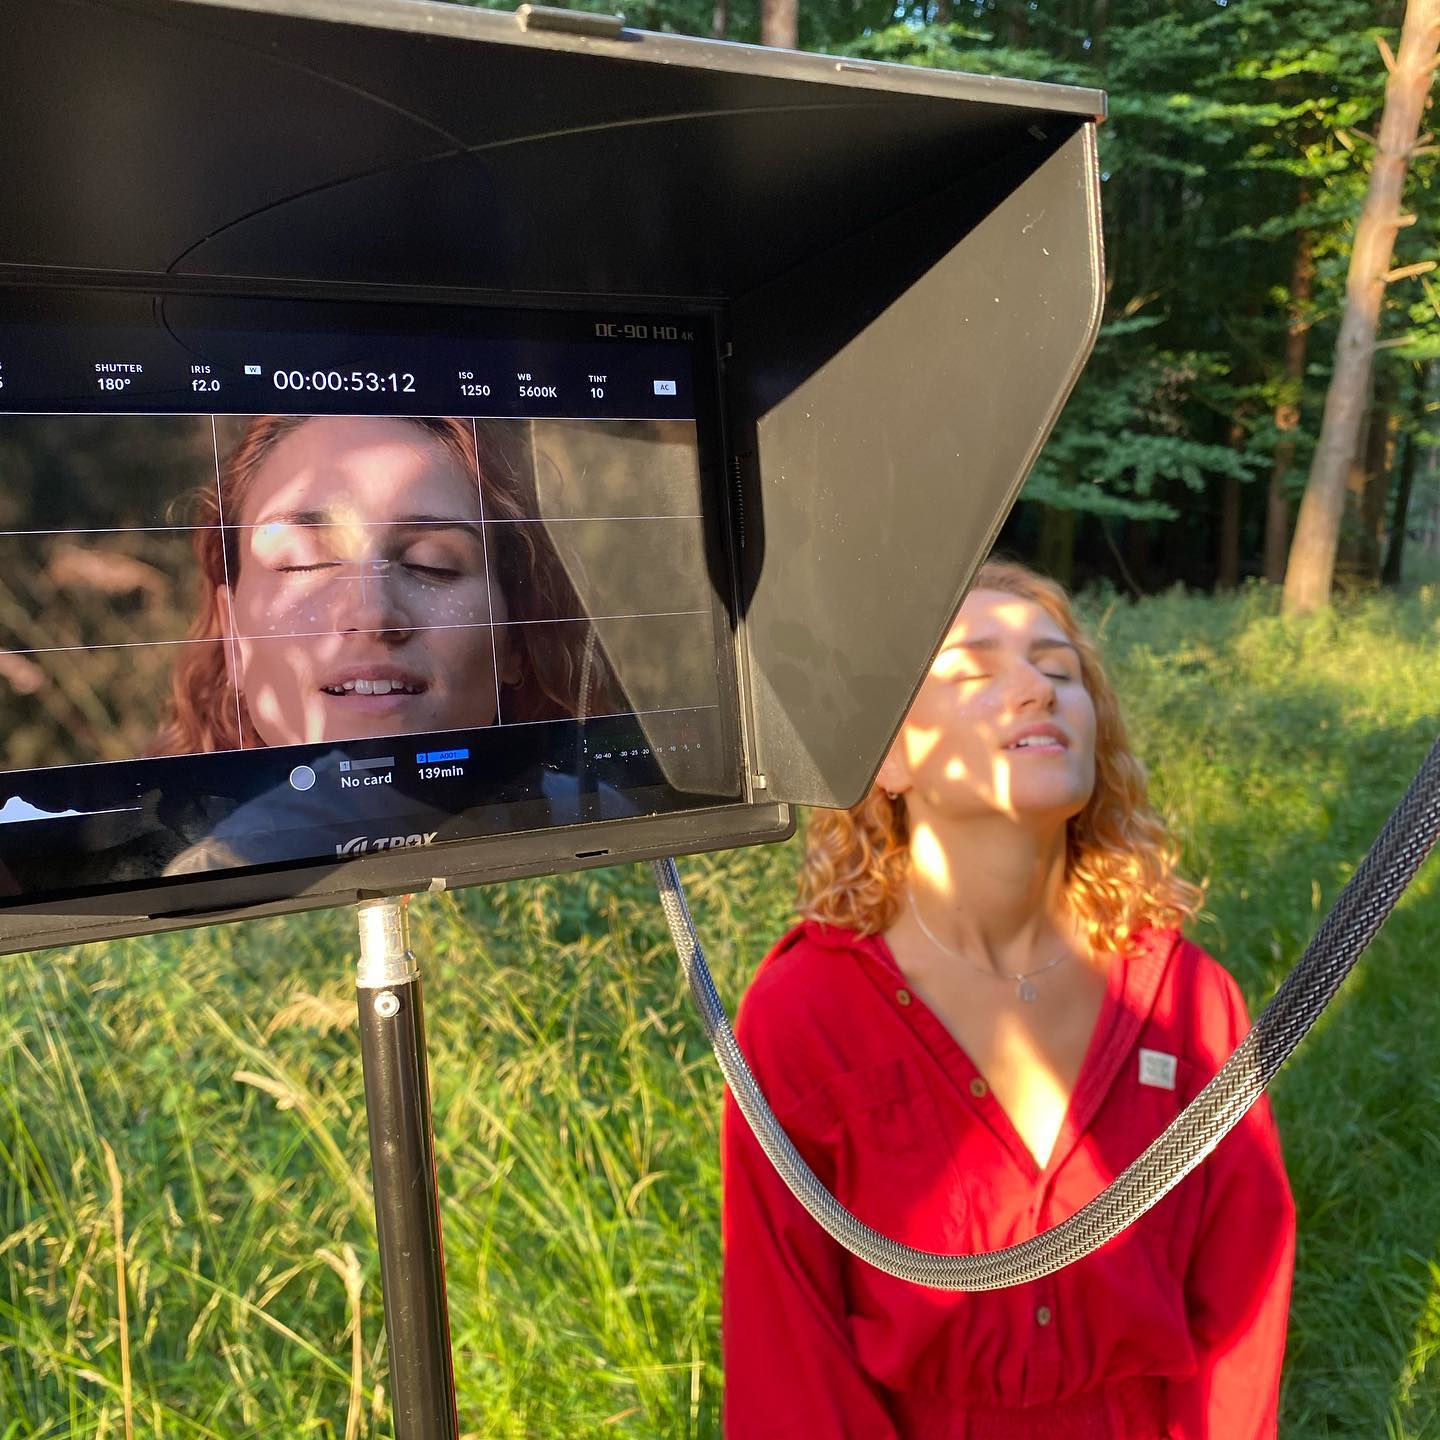 Behind the scenes image from short film Robyn with the Viltrox DC-90 HD 4K monitor on location